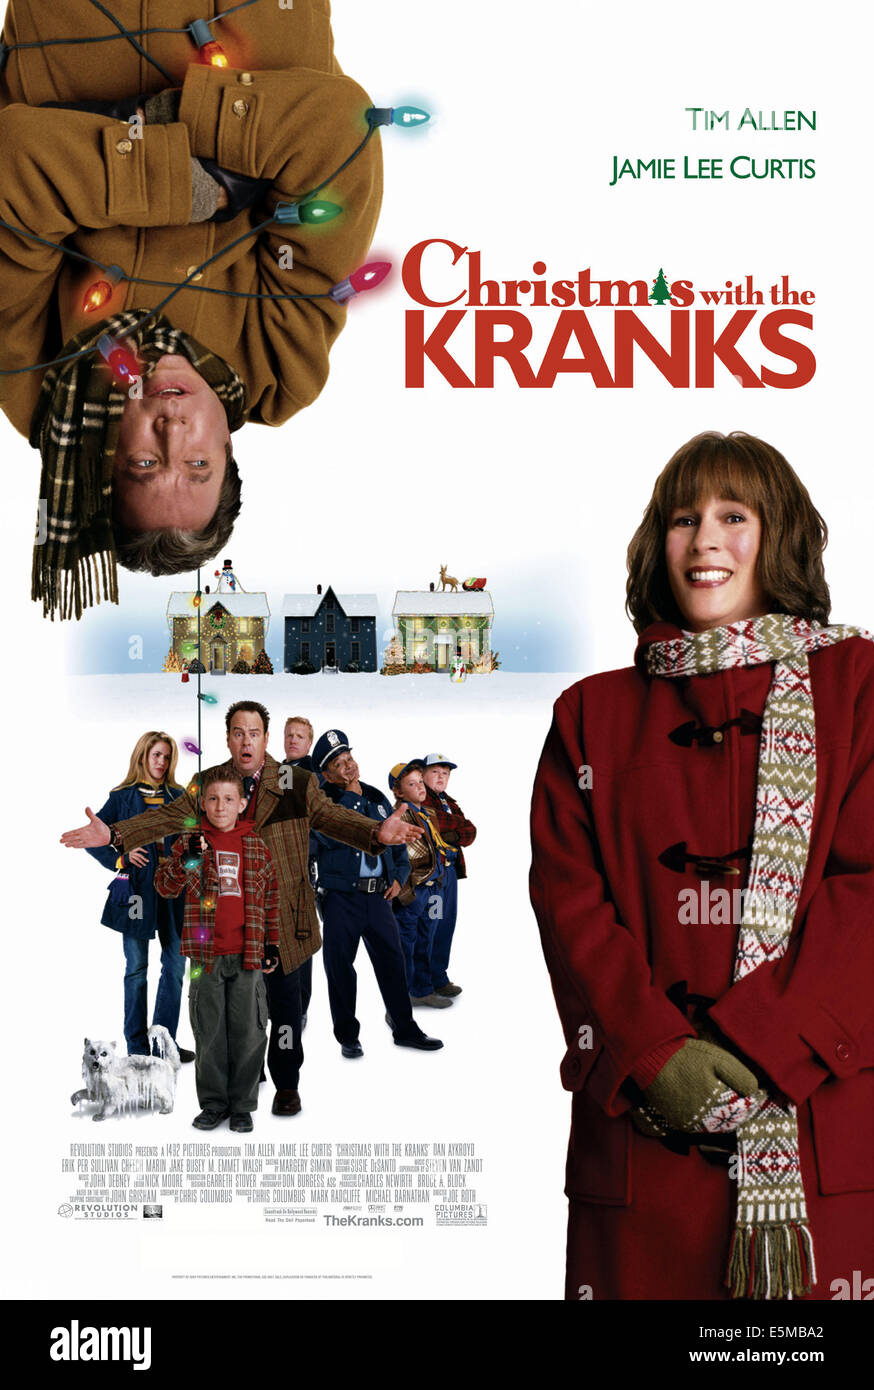 CHRISTMAS WITH THE KRANKS, Tim Allen, Jamie Lee Curtis, 2004, (c) Columbia/courtesy Everett Collection - Stock Image